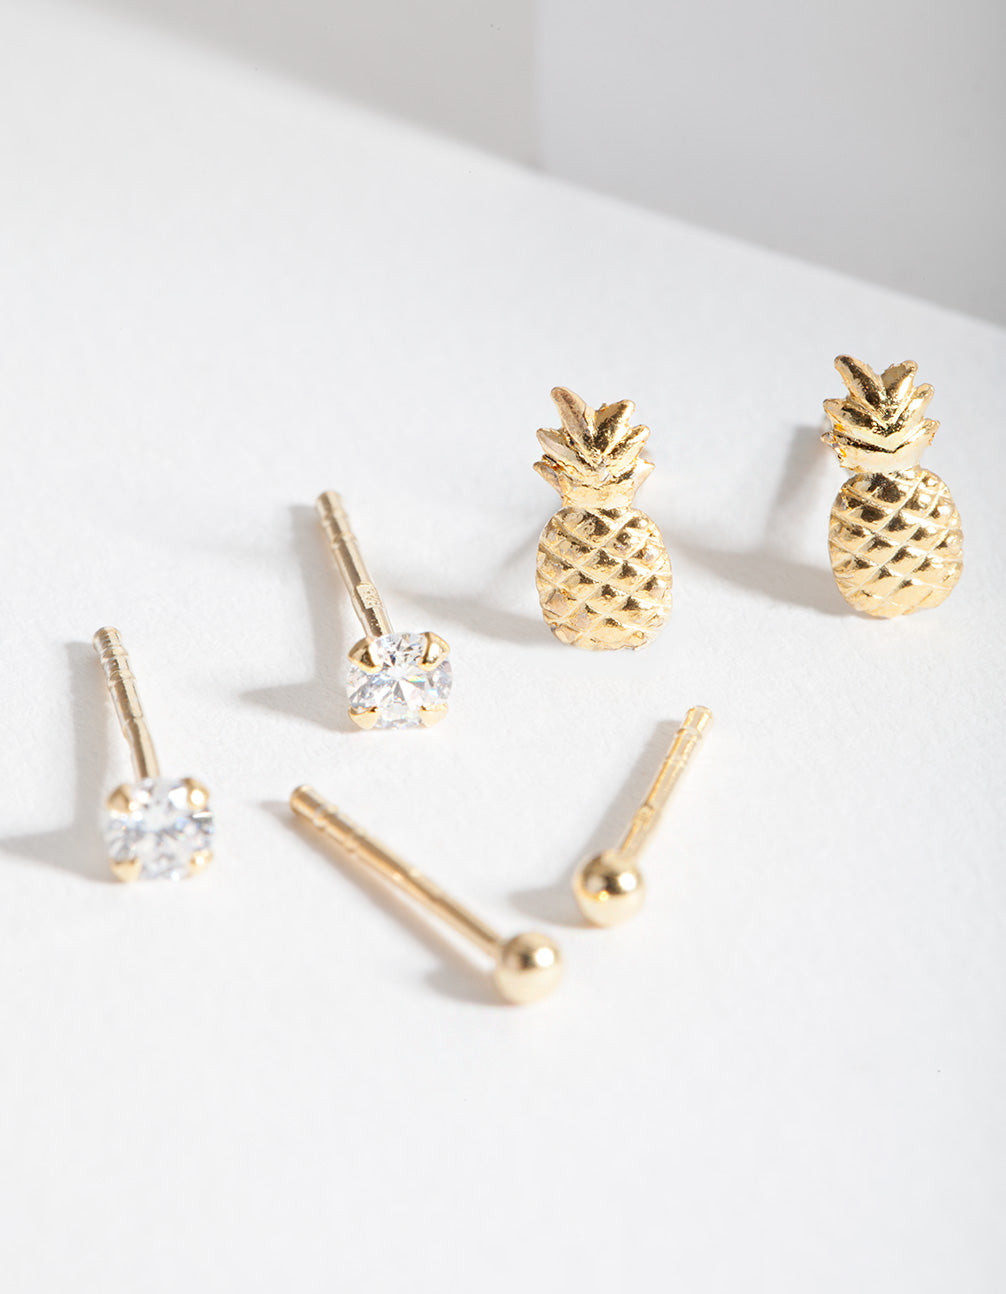 Gold Plated Sterling Silver Pineapple Earring Stud Pack